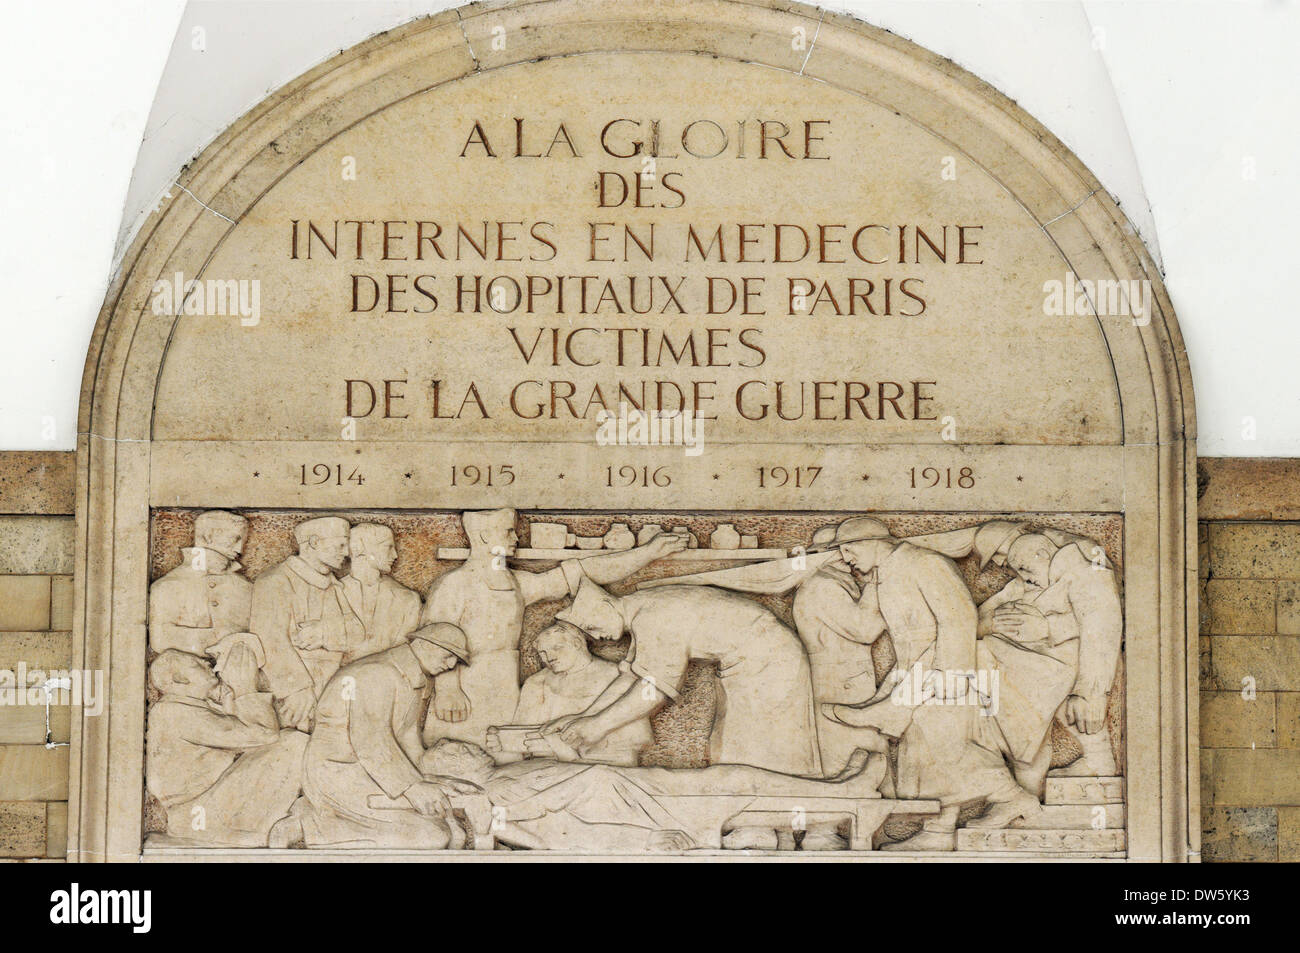 A plaque in Paris to commemorate the interns (medical students) who died whilst working at the front lines in World War 1 - Stock Image